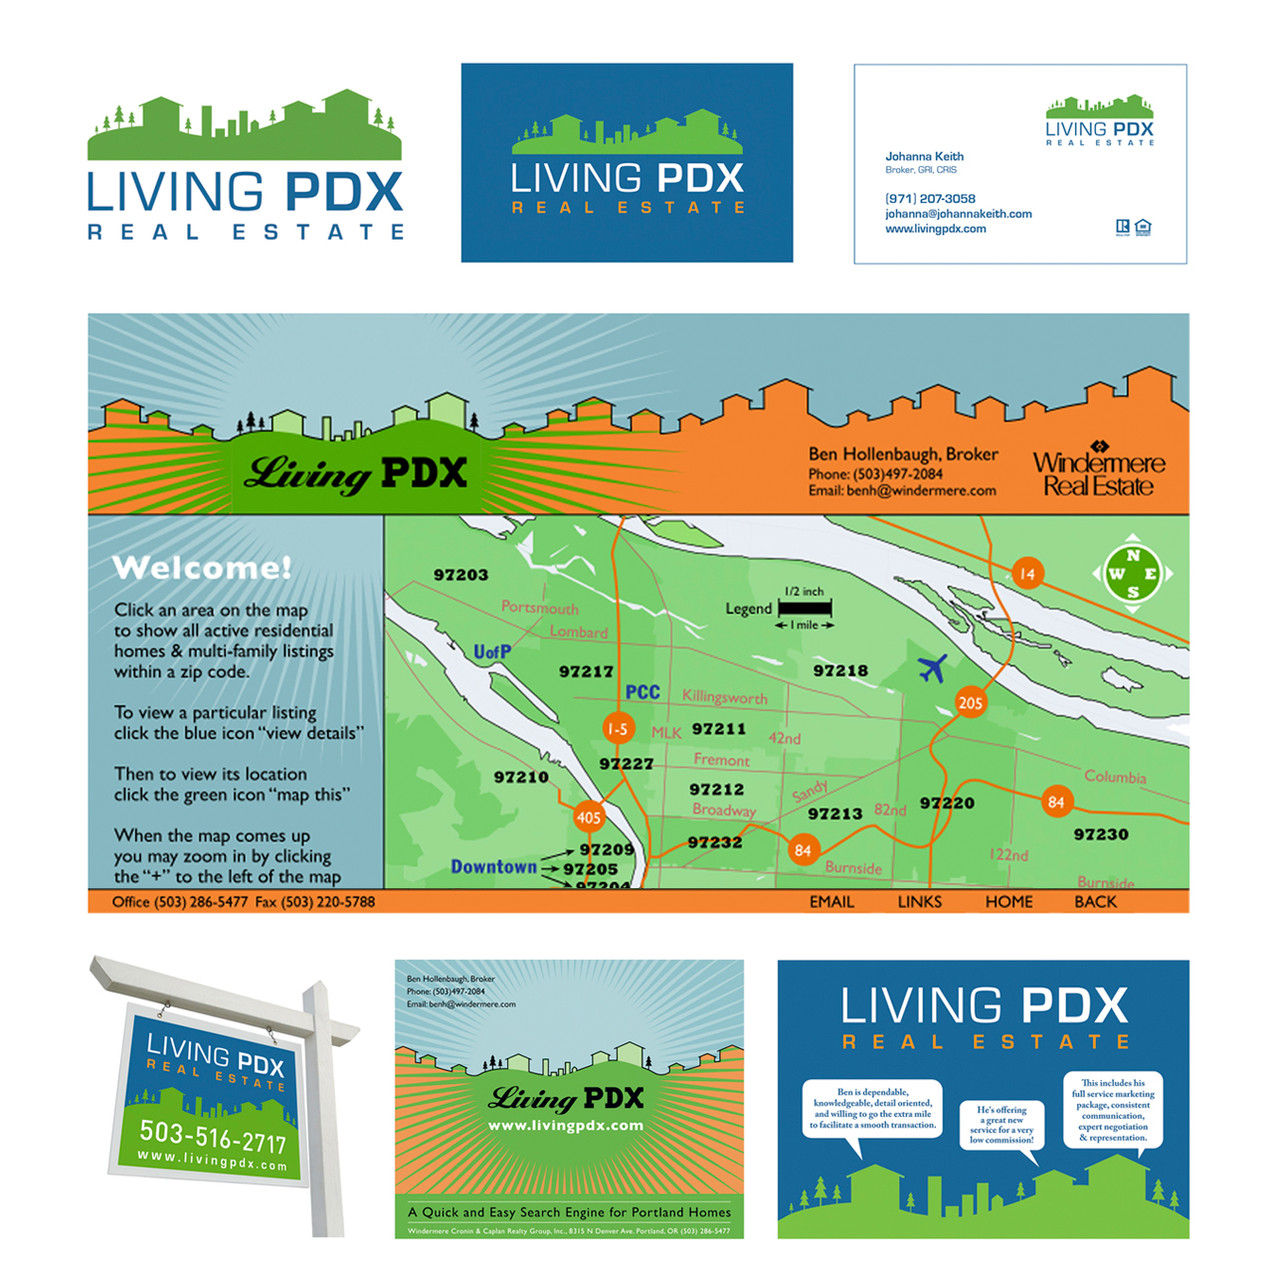 Living PDX, Branding, Website Design, Signage and Print Collateral